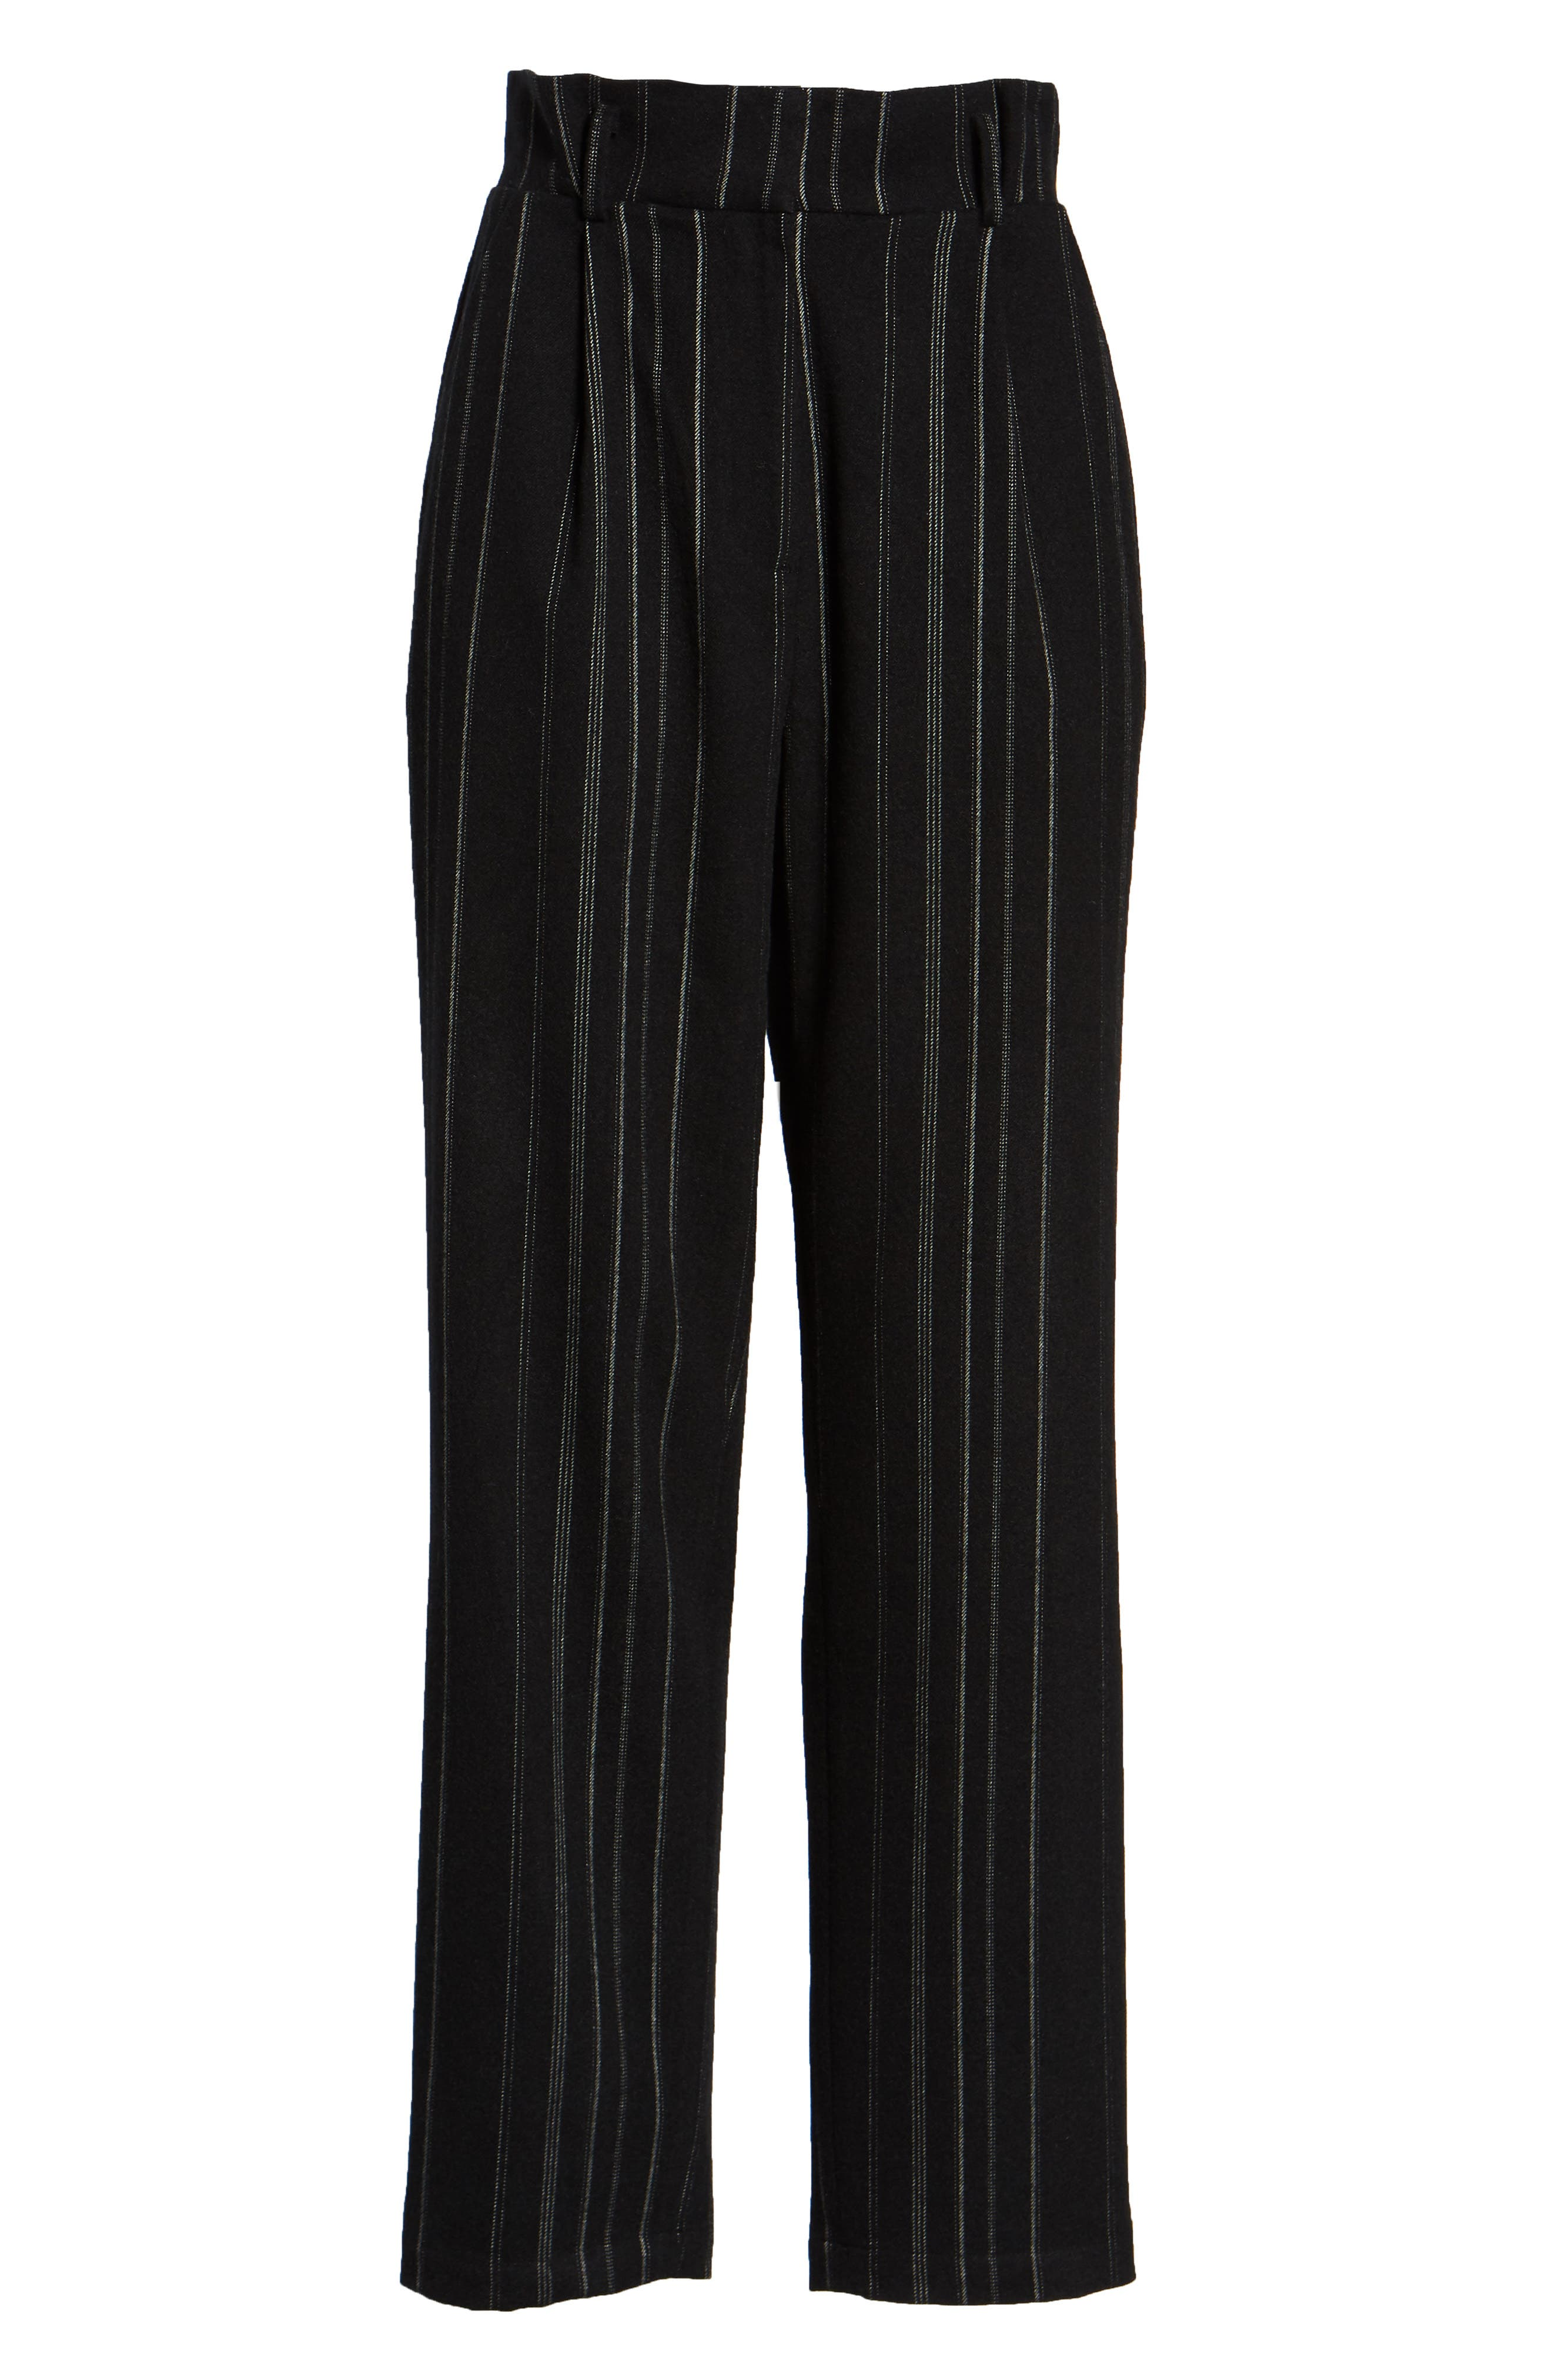 High Rise Belted Paperbag Pants,                             Alternate thumbnail 8, color,                             BLACK MIXED STRIPE